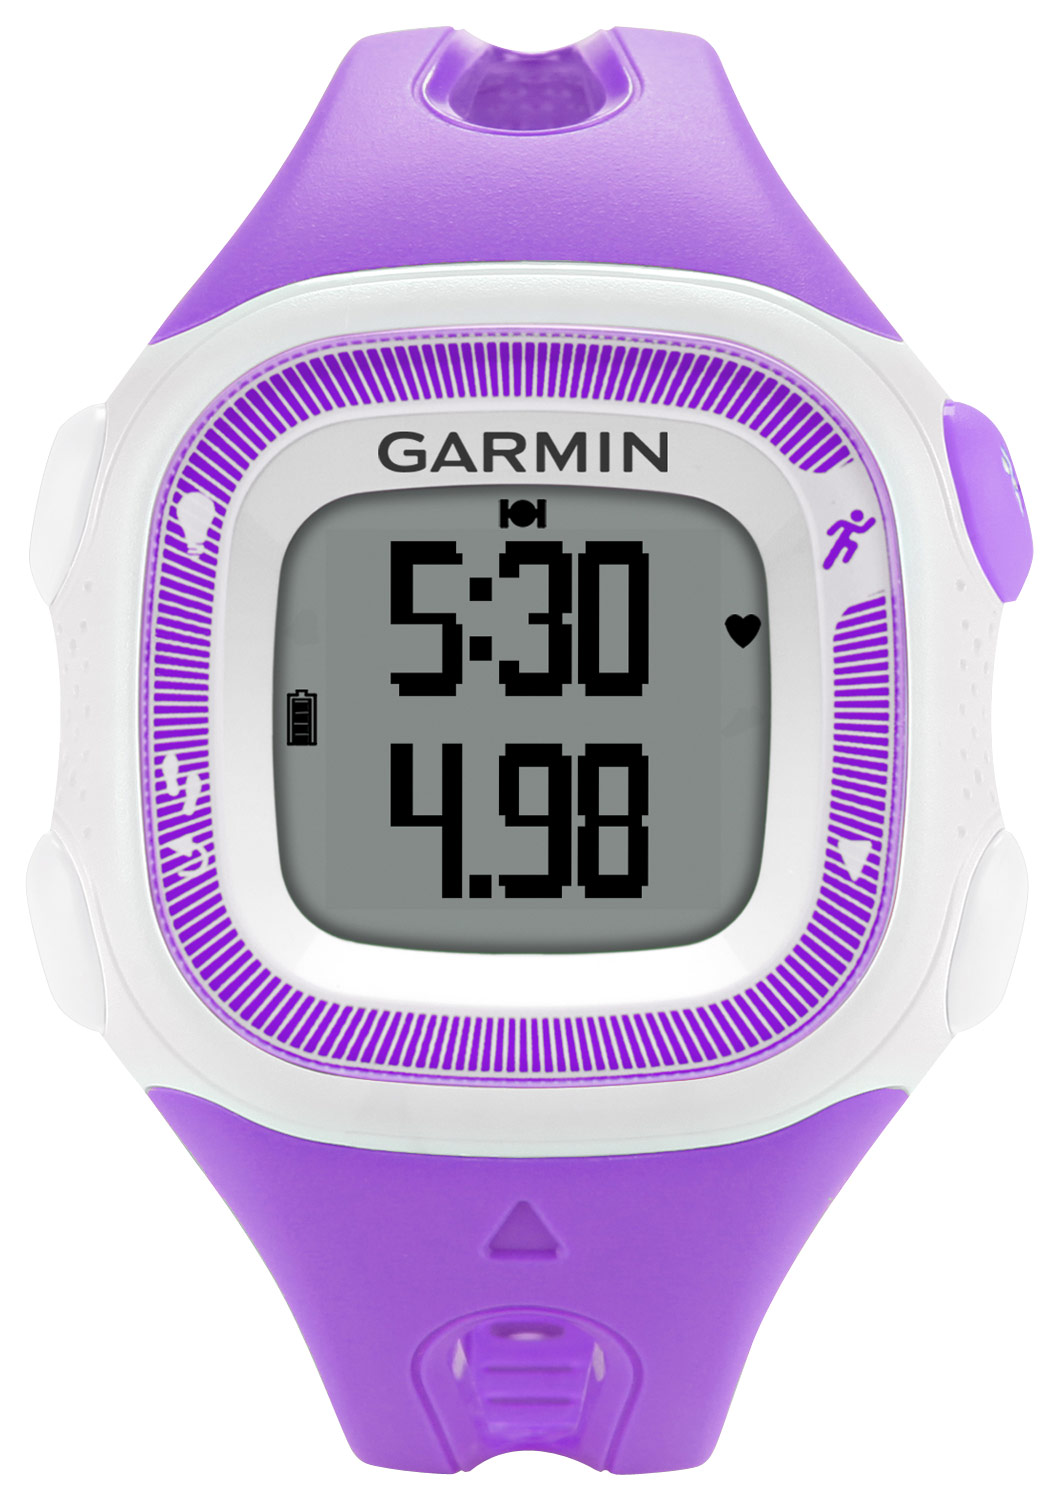 Garmin - Forerunner 15 GPS Watch (Small) - Violet/White - Larger Front